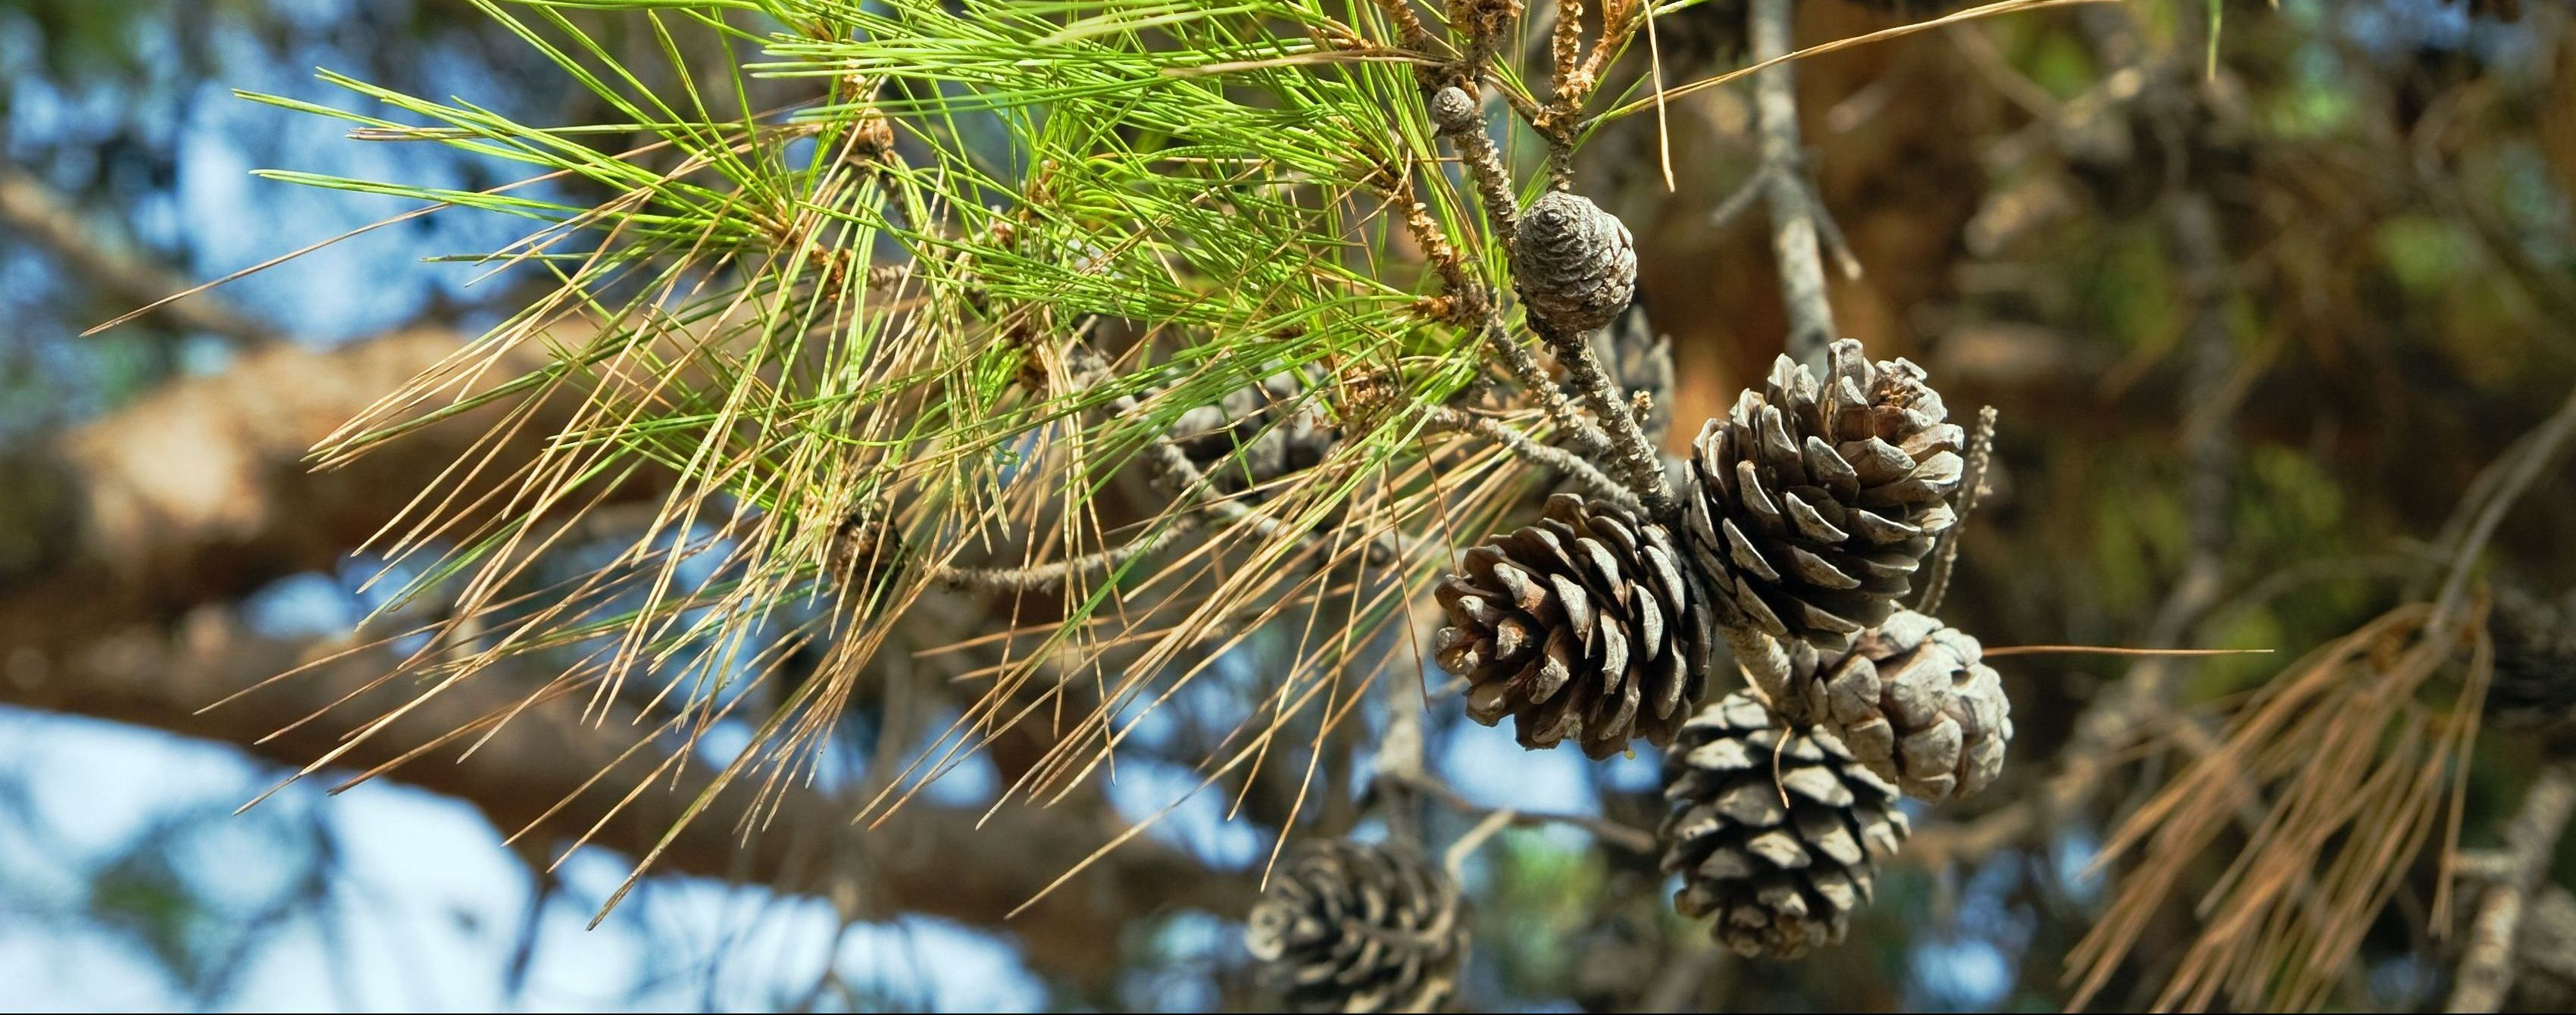 Very tall standing pine tree in Alberta with pine cones